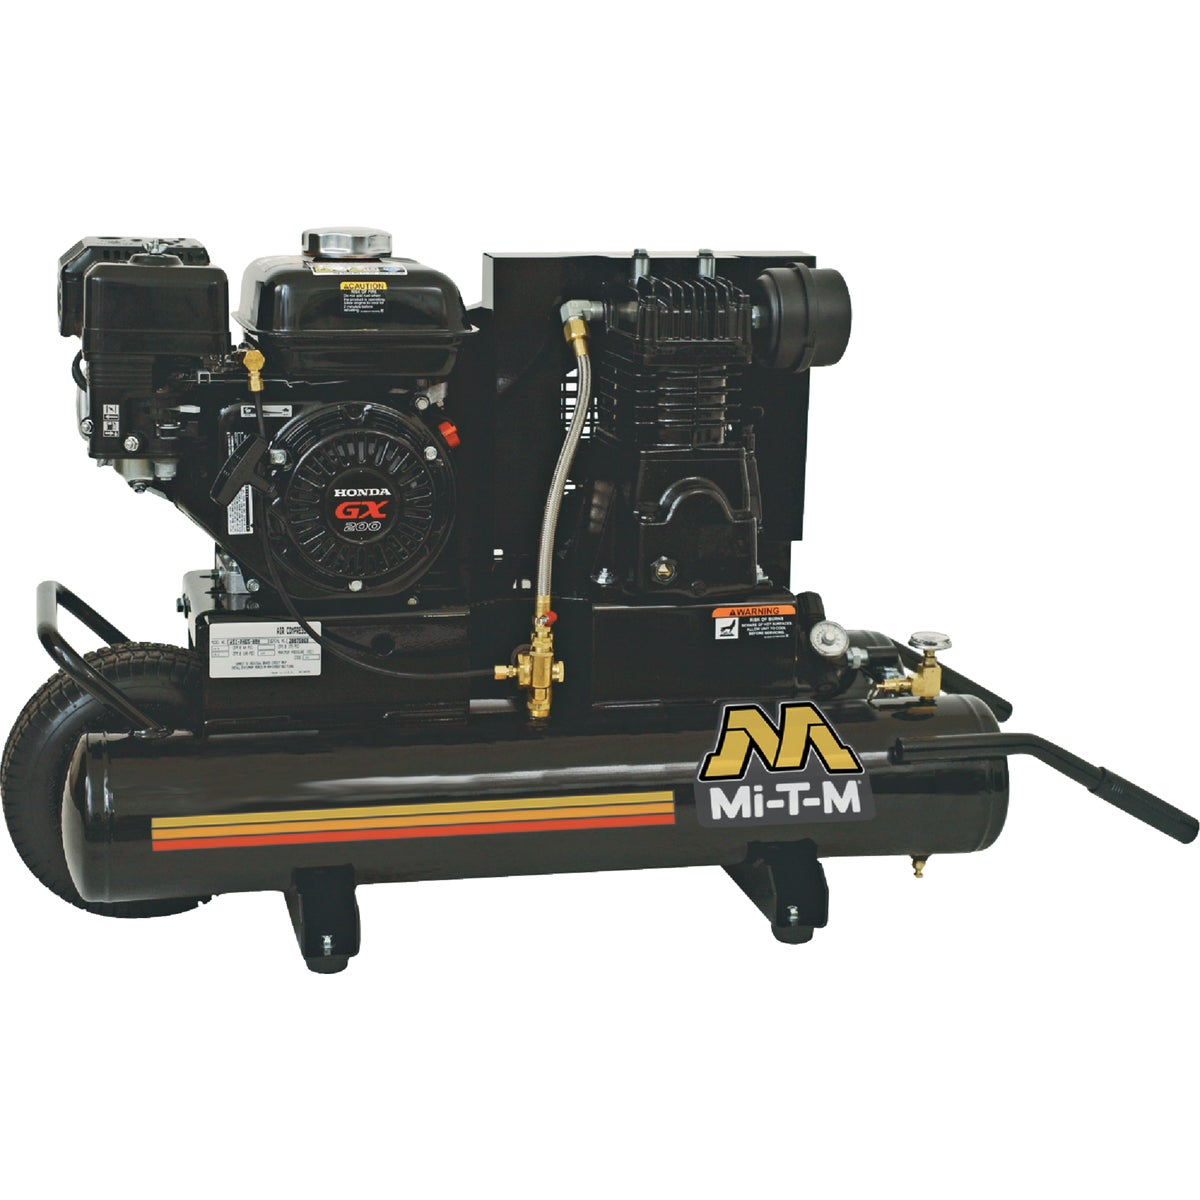 6.5HP GAS AIR COMPRESSOR - AM1-PH65-08M by Mi T M Corp